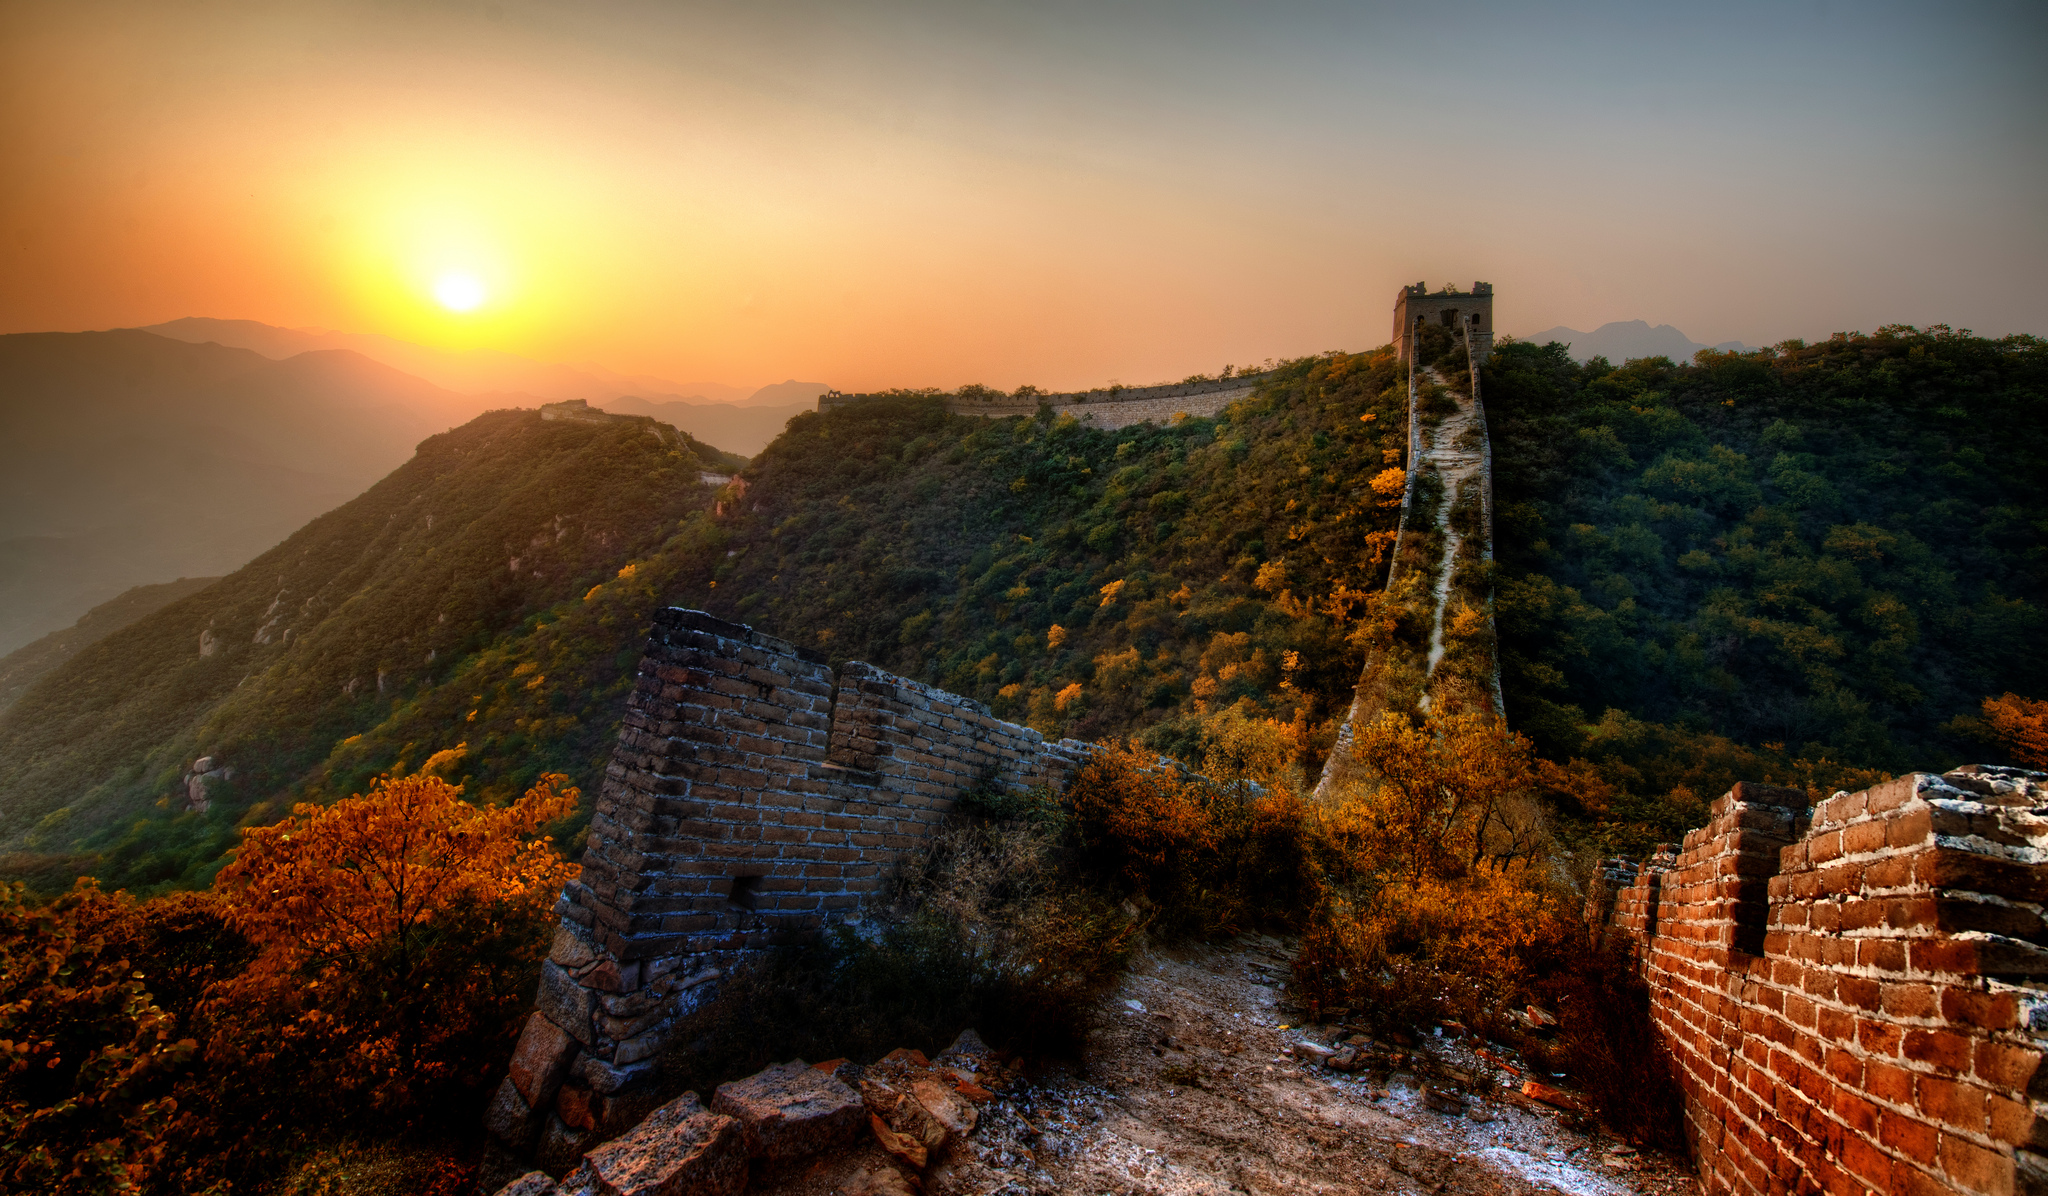 Image: The New Garden Path Along the Great Wall of China. Image source: